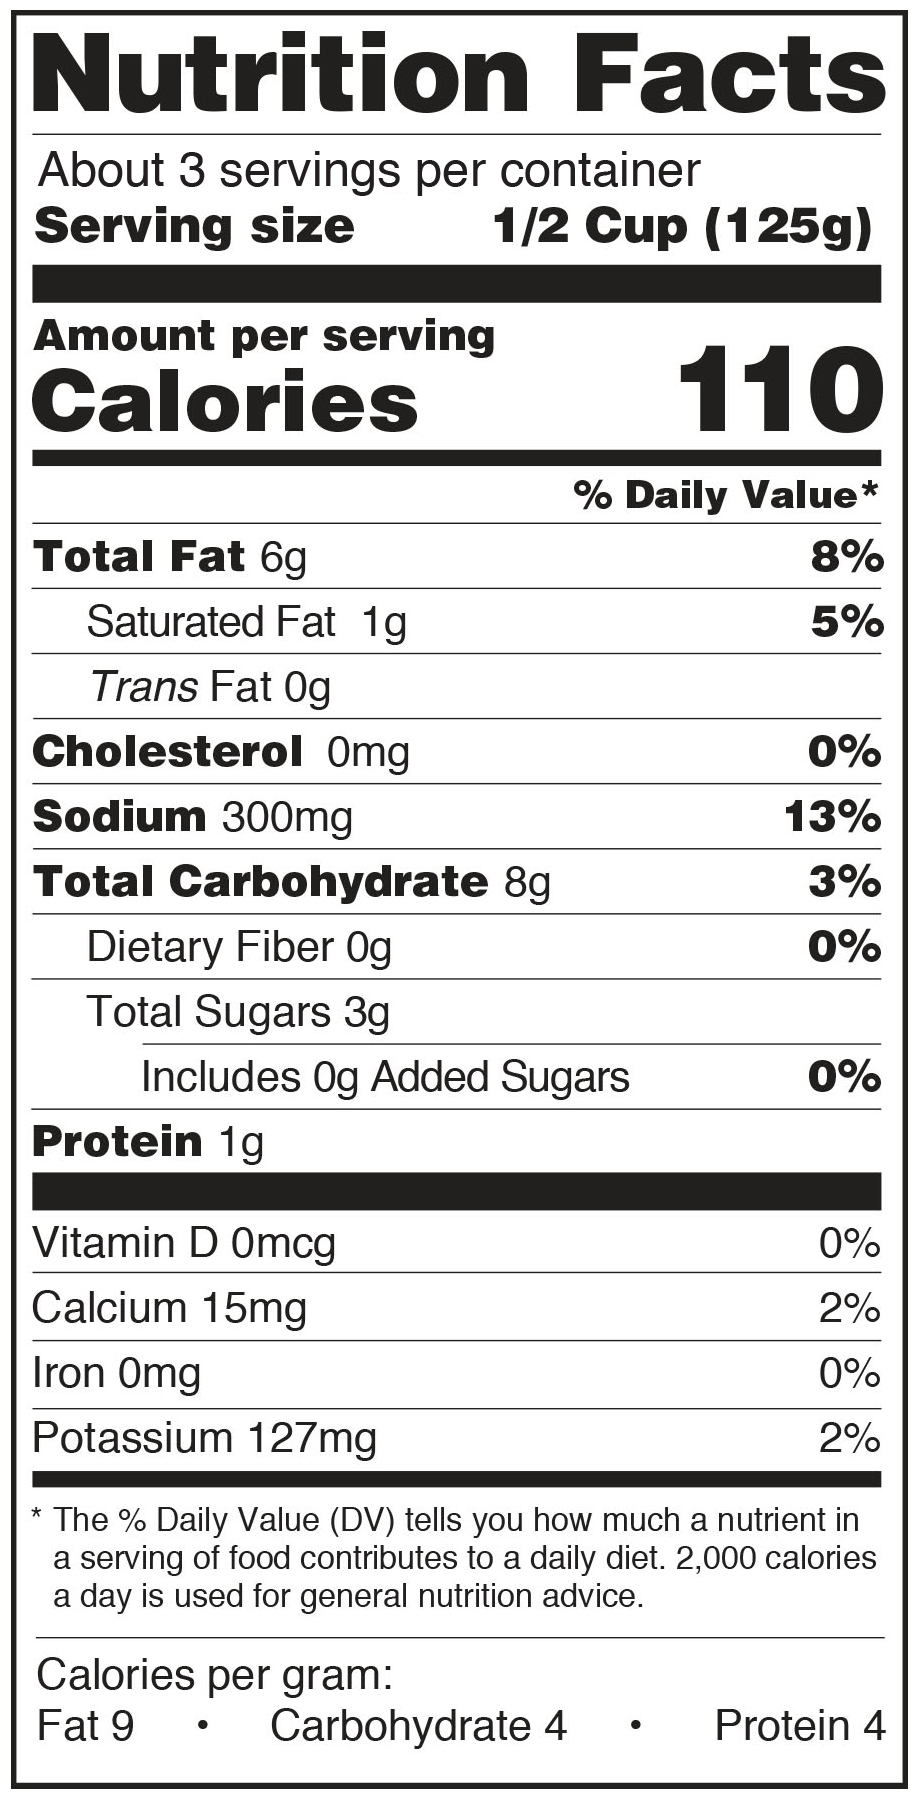 Paesana Marsala Francese Nutrition Facts Panel